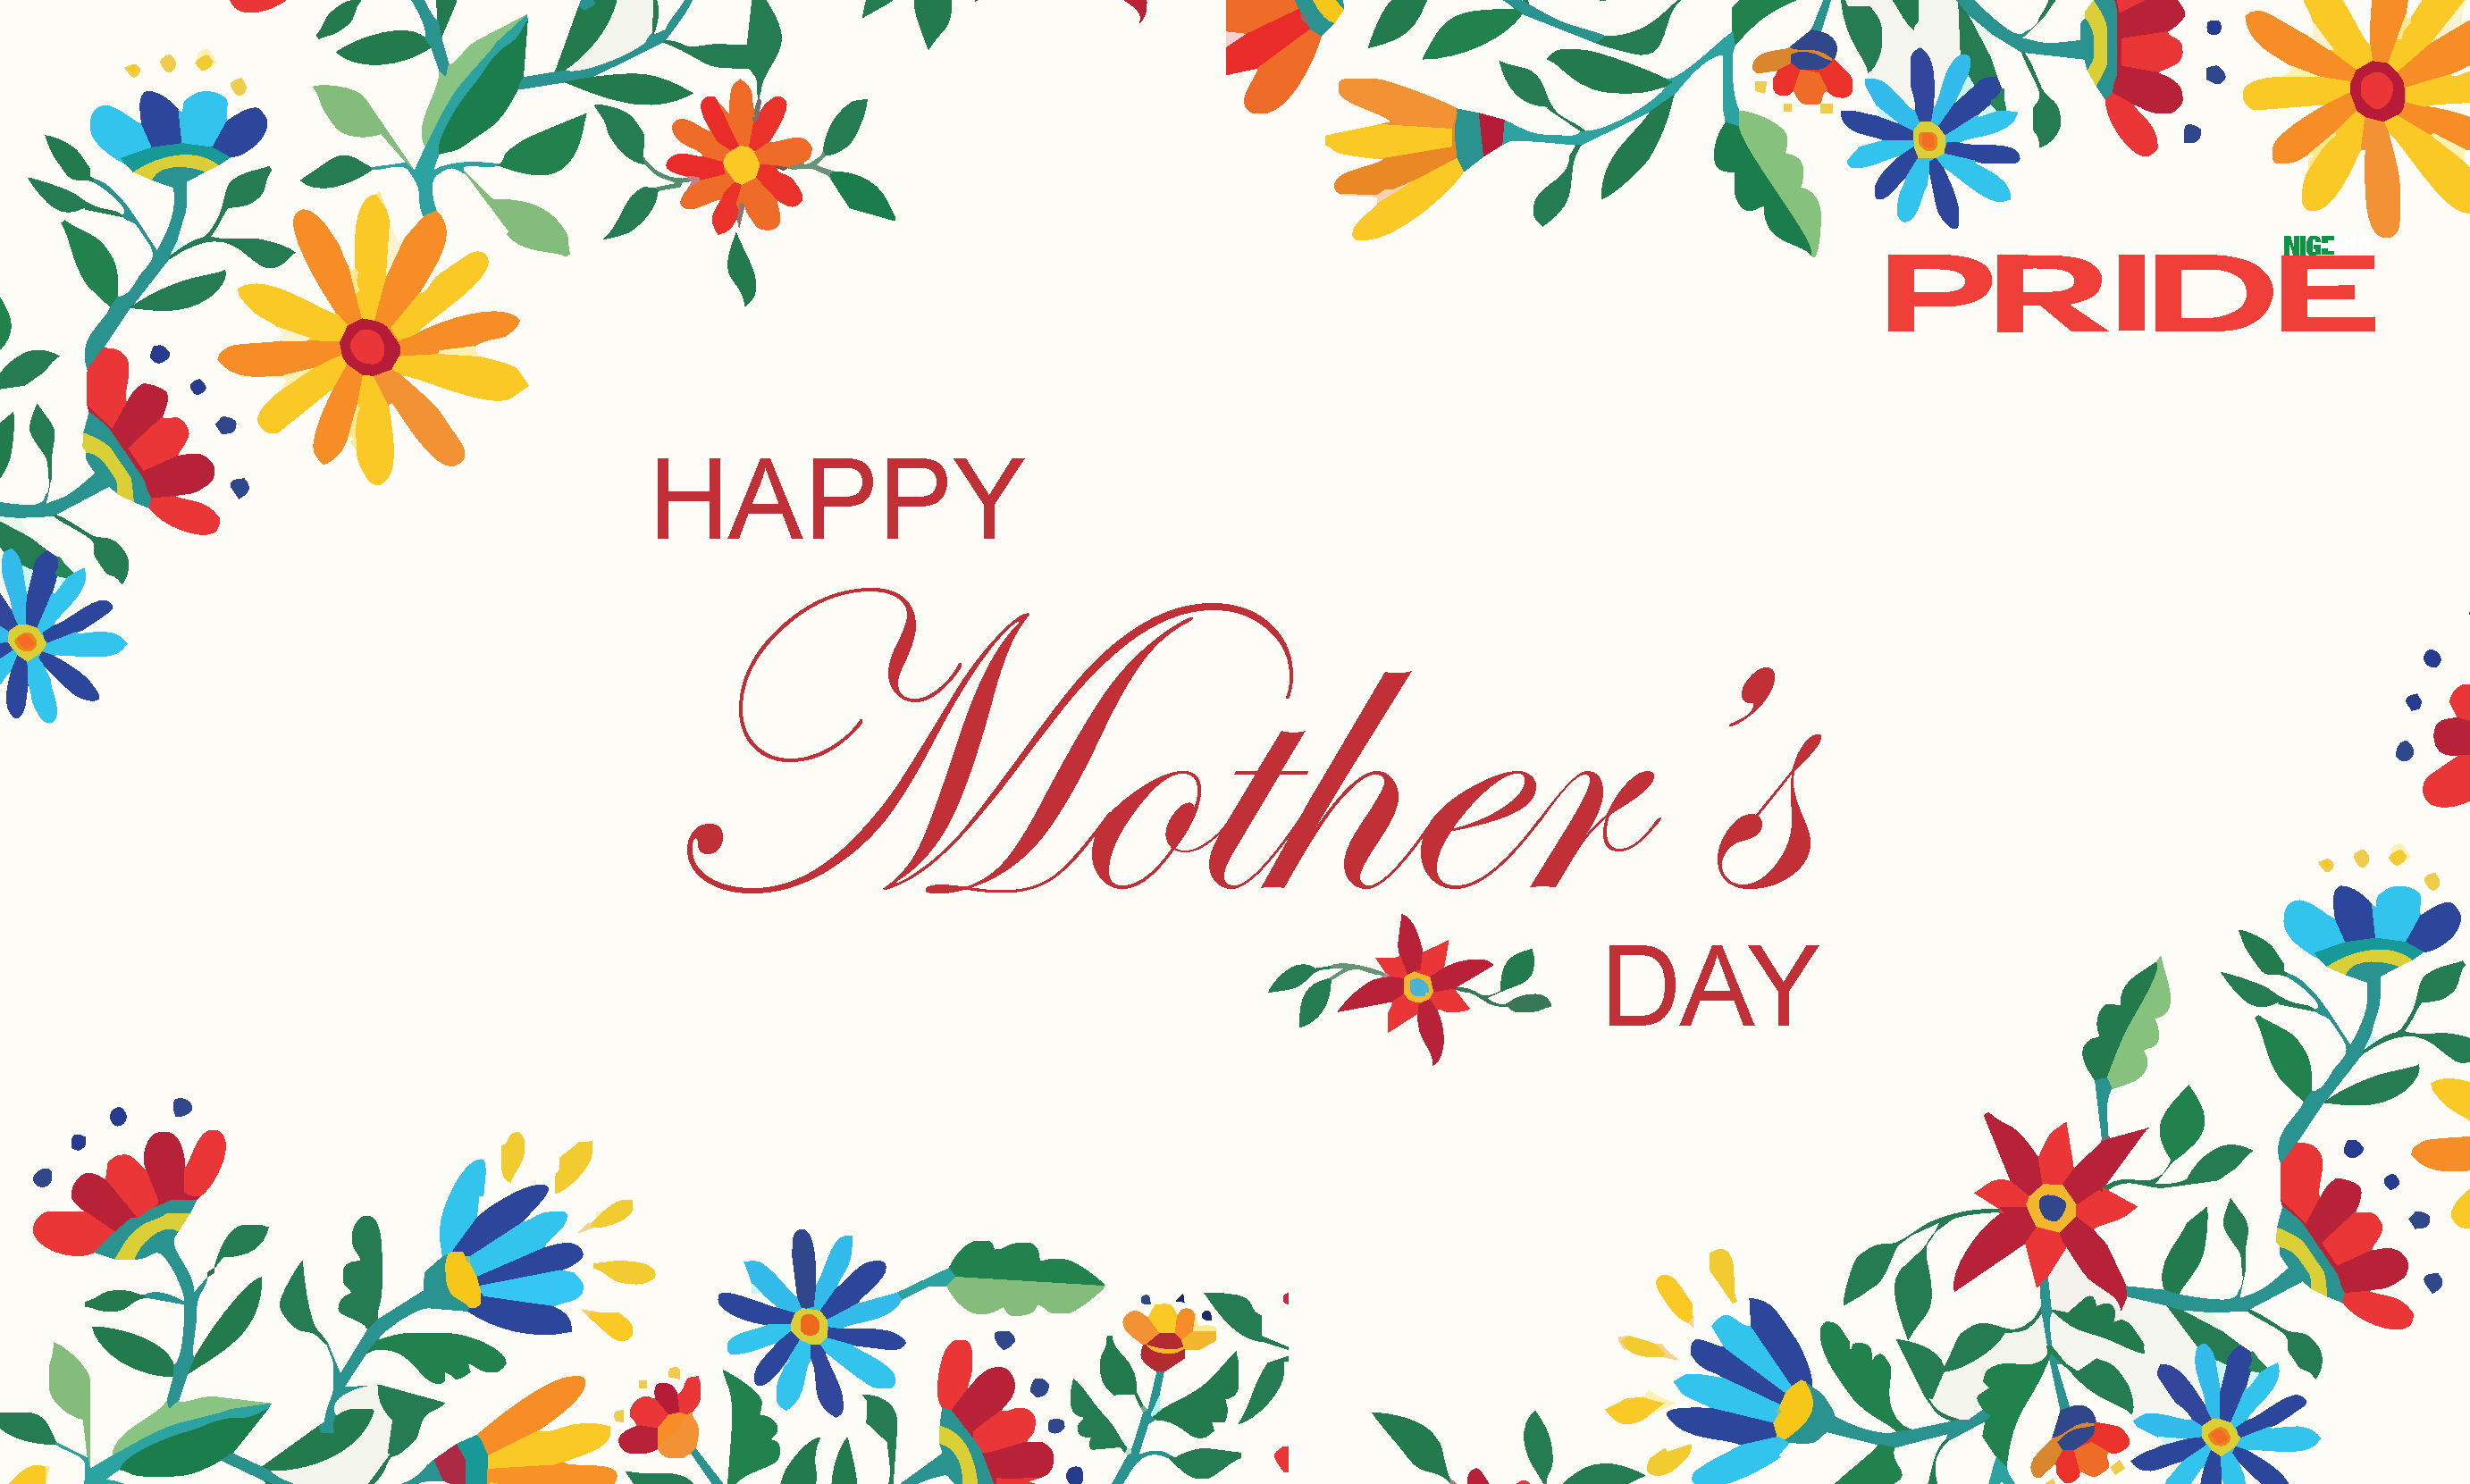 Happy Mothers Day From The Pride Team